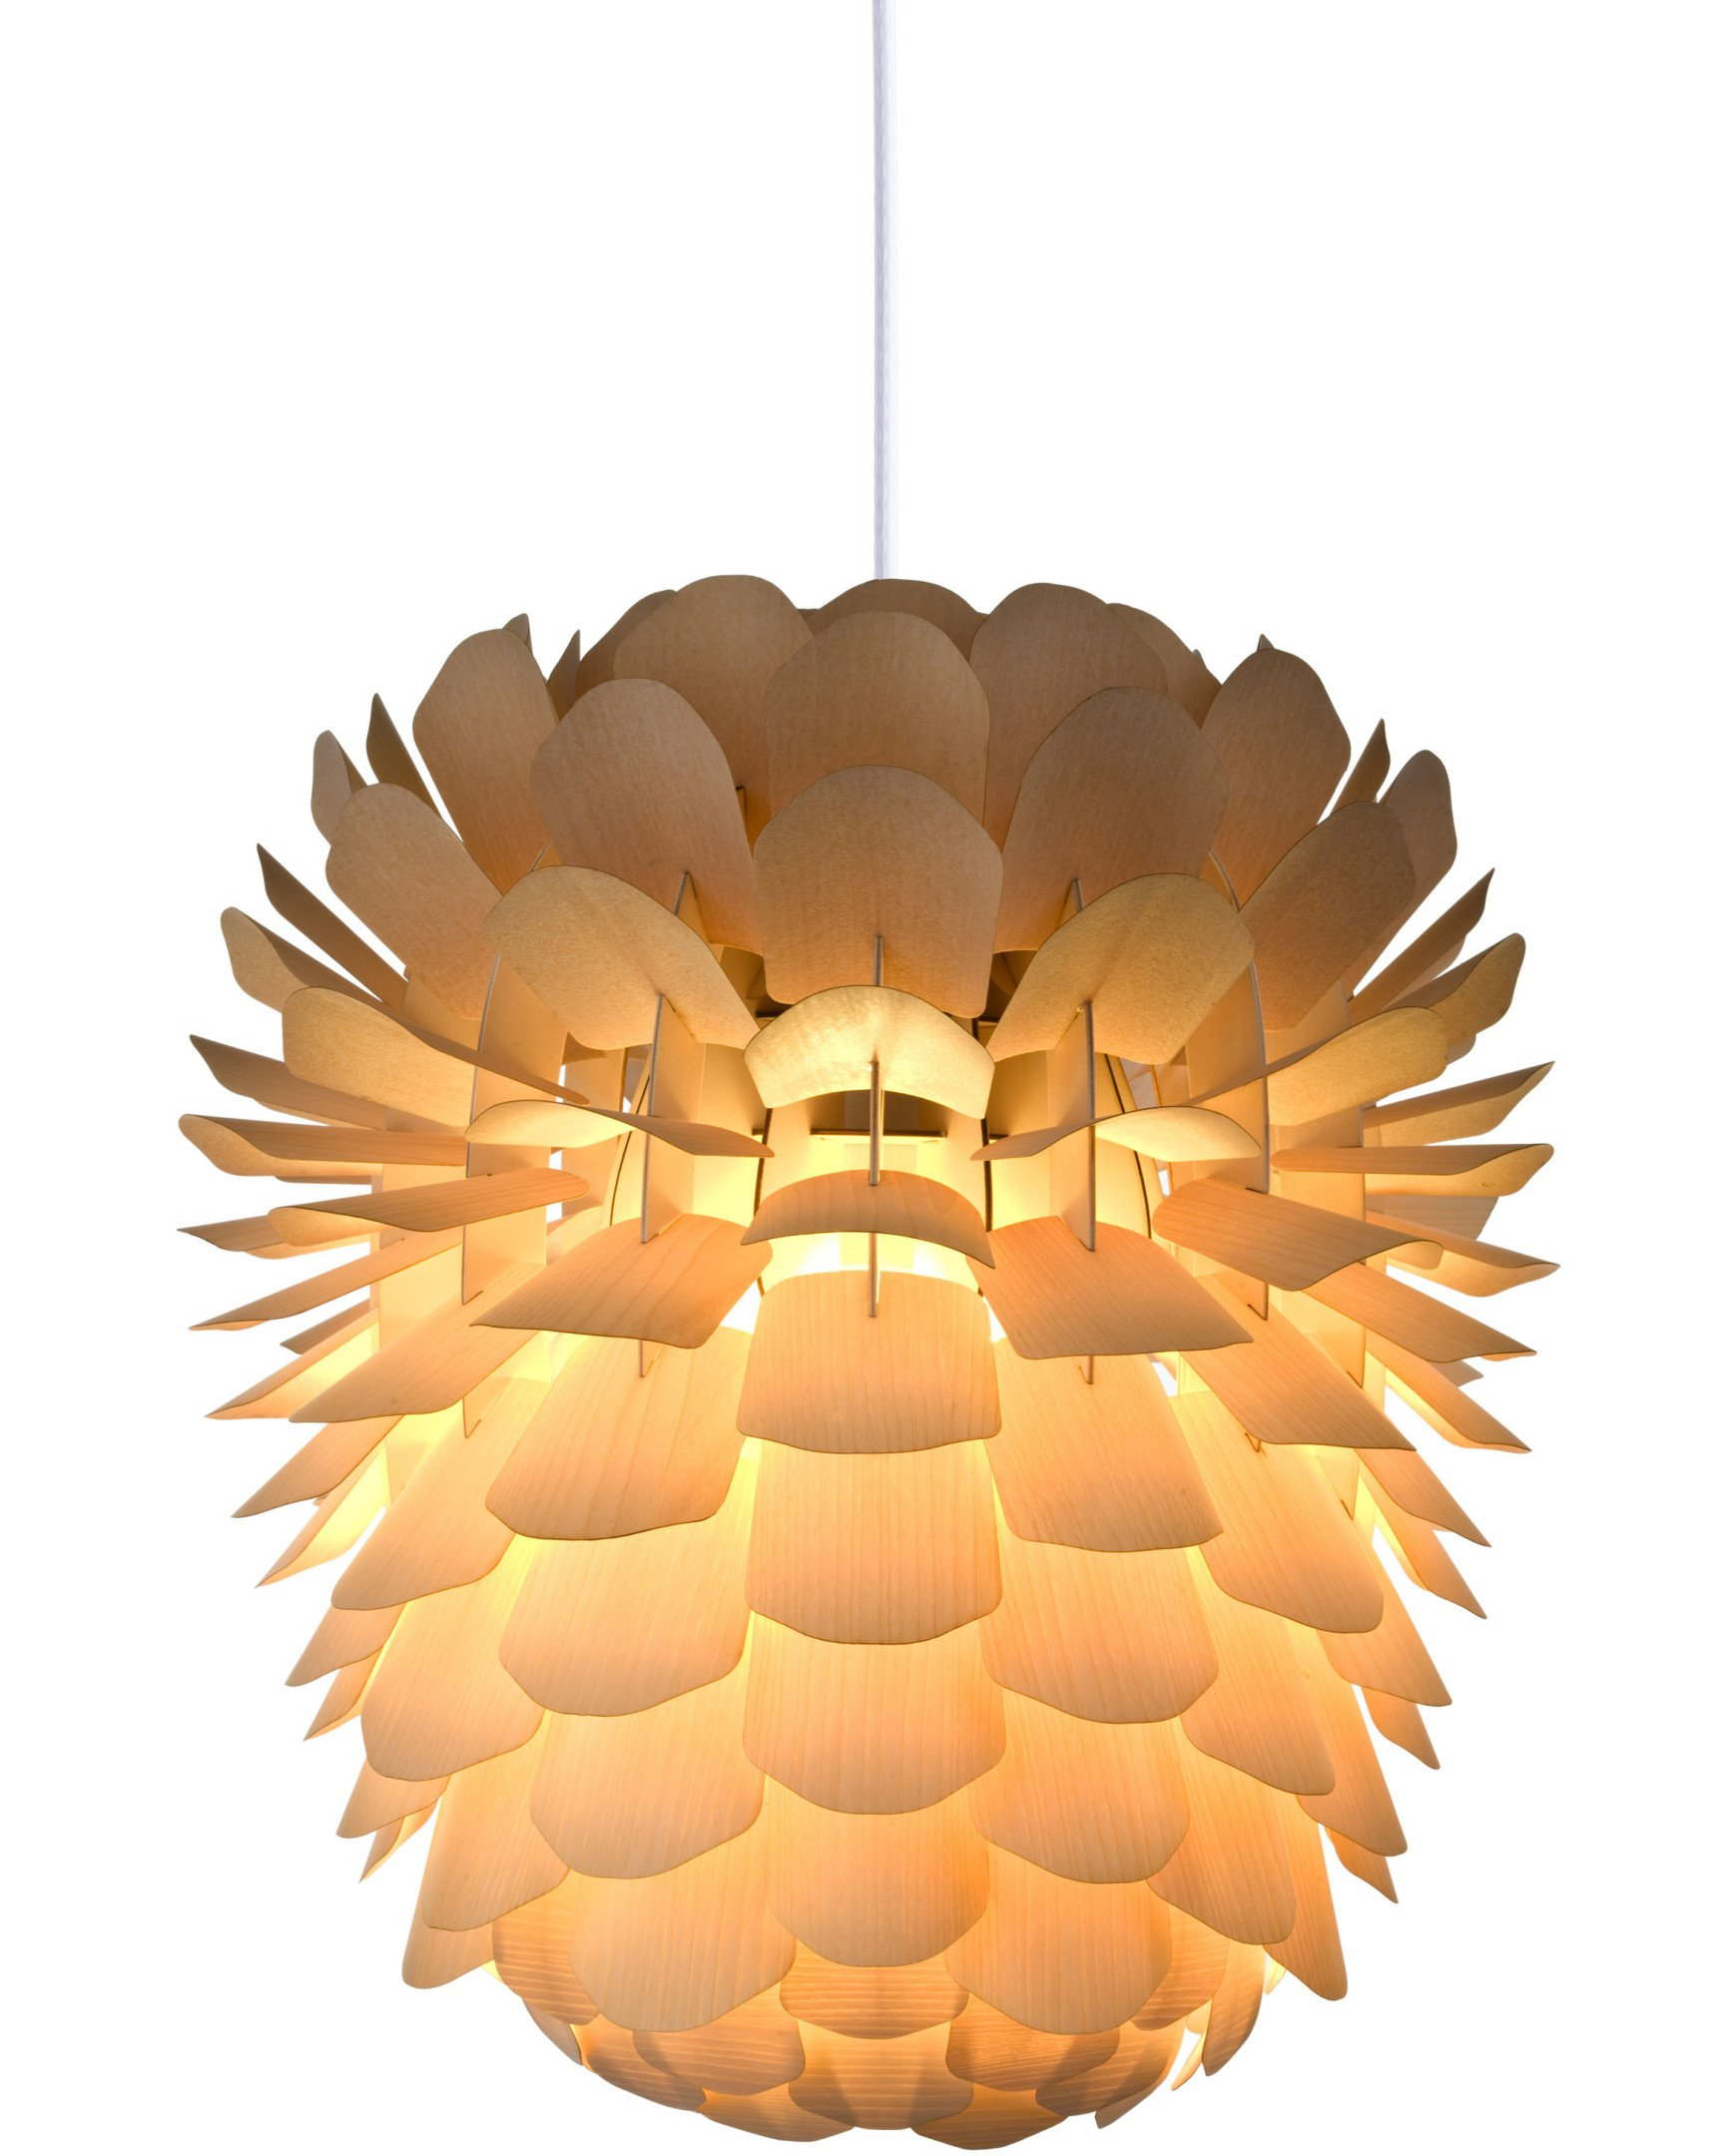 Zappy Small Pendant Lamp Ash by N. Jessen for Schneid